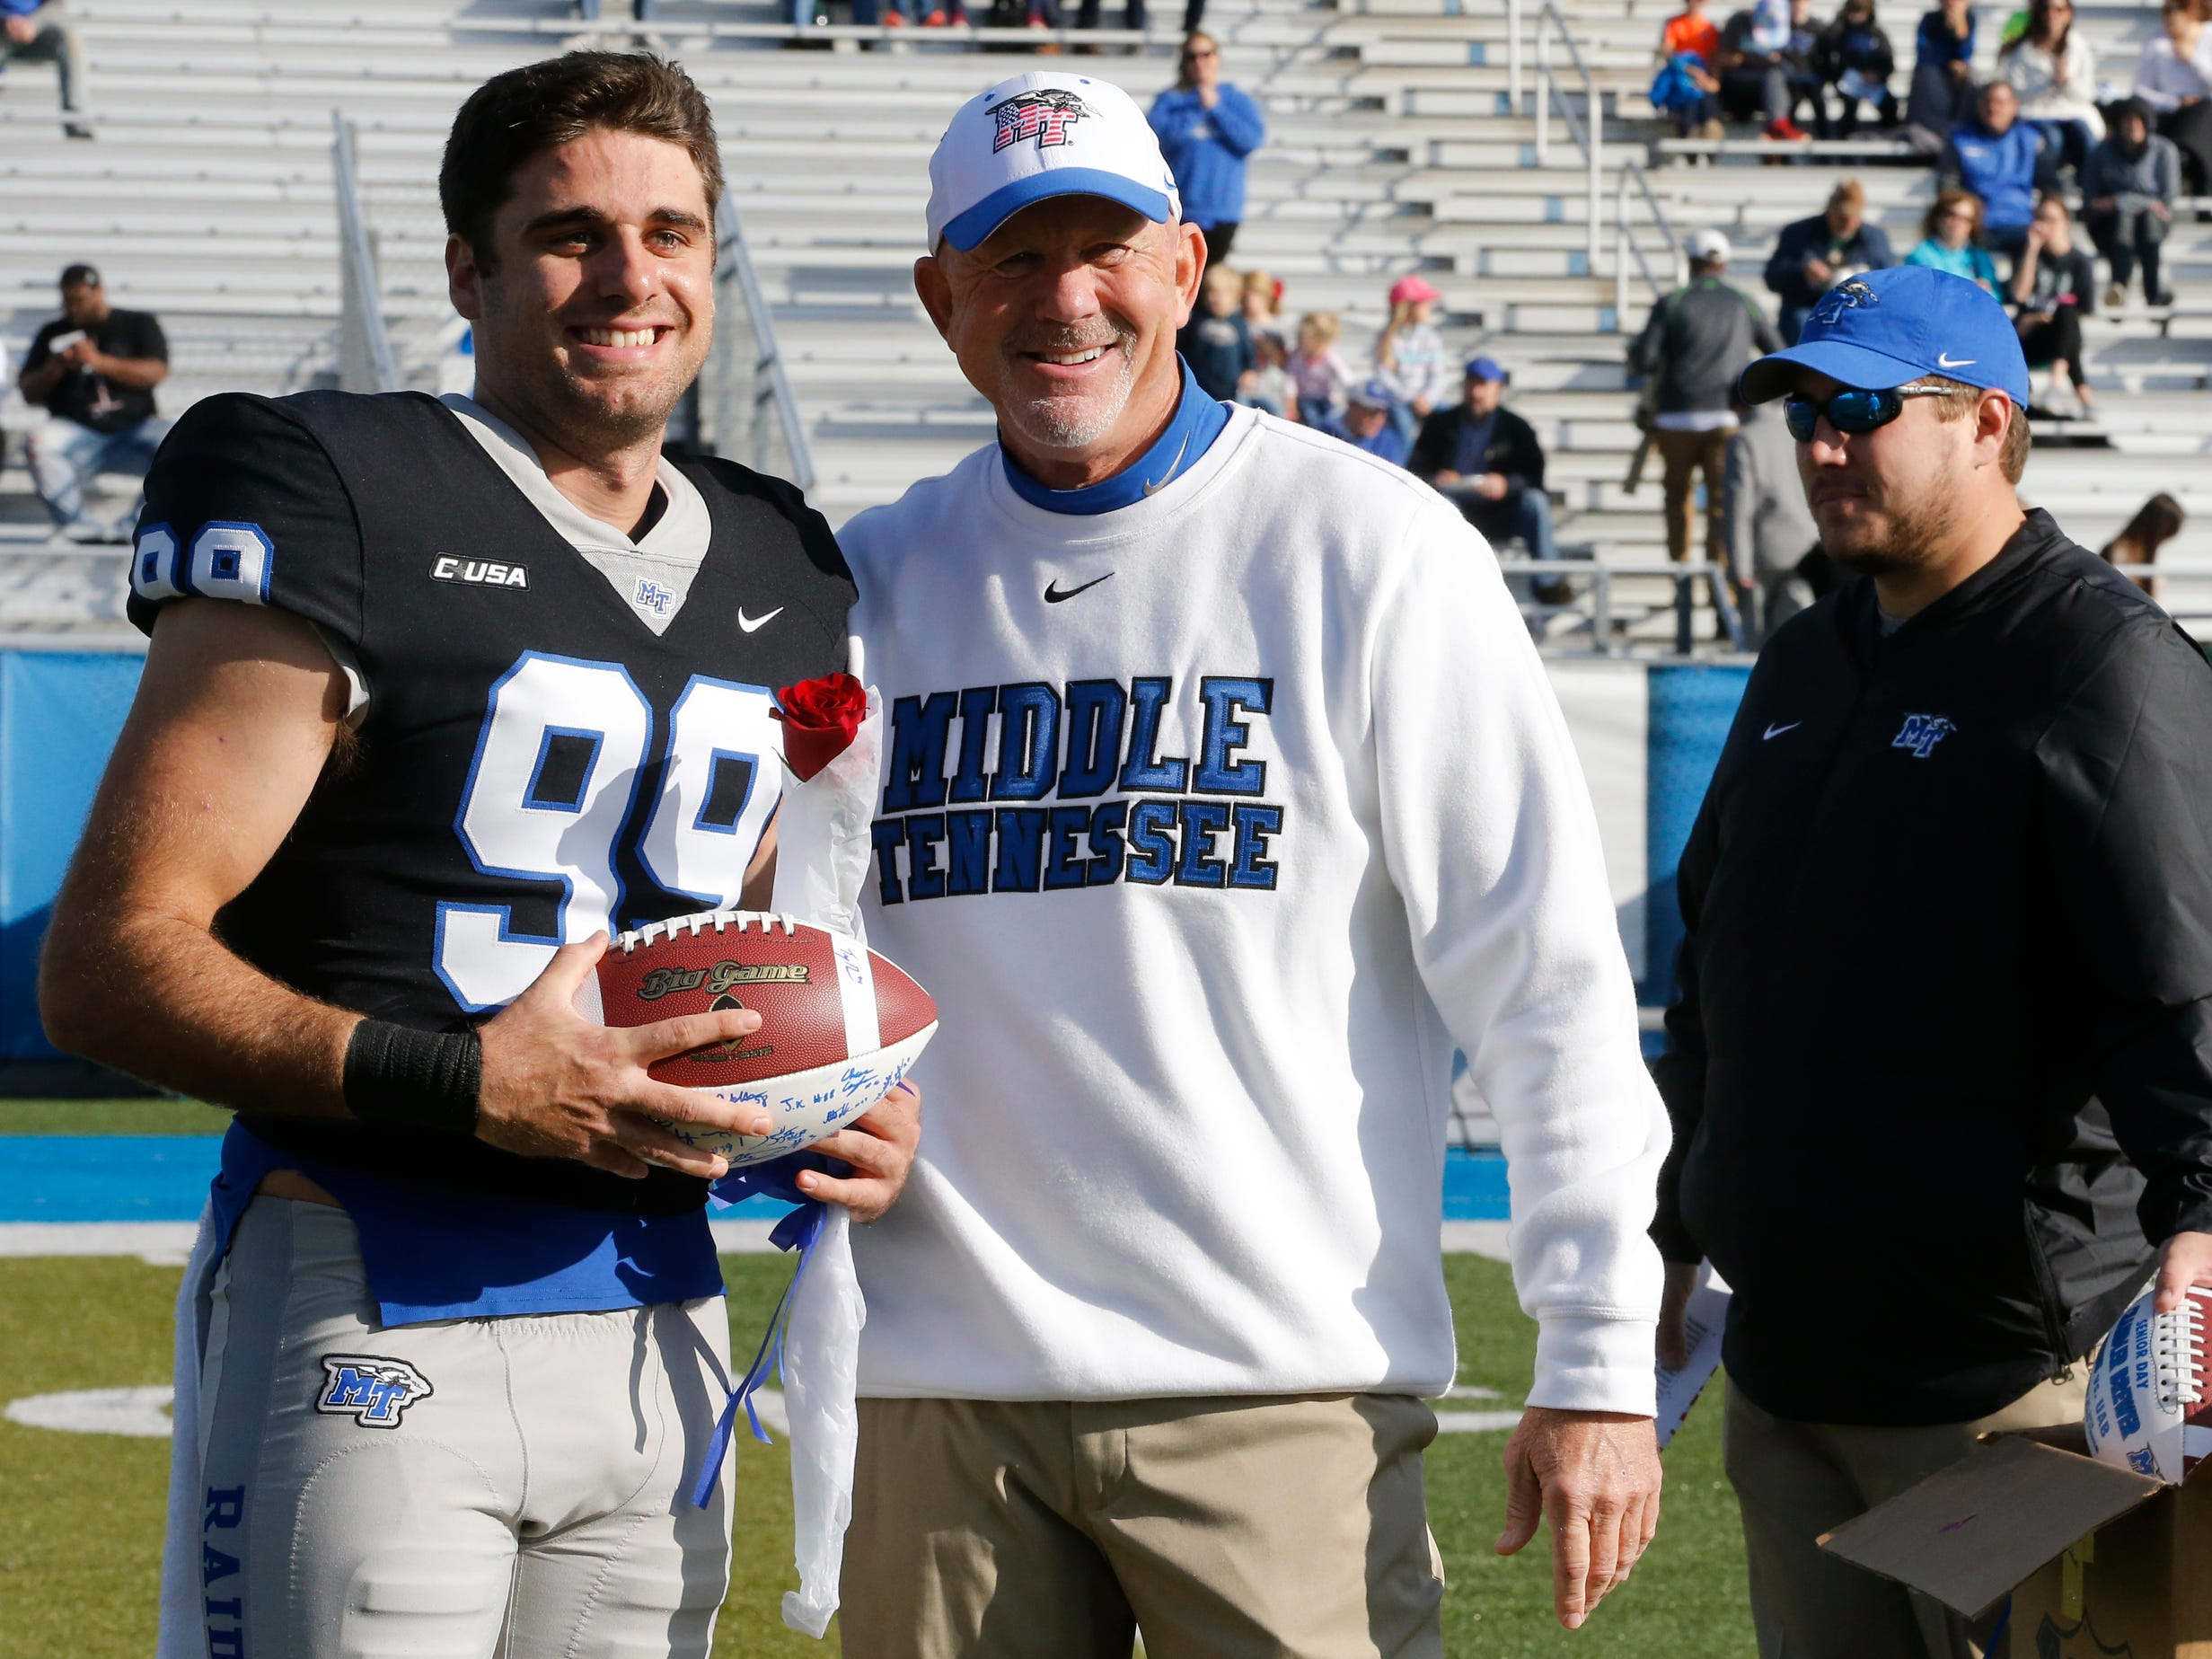 MTSU honored the seniors on Senior Day, before the start of the game against UAB at MTSU, on Saturday, Sept. 29, 2018.